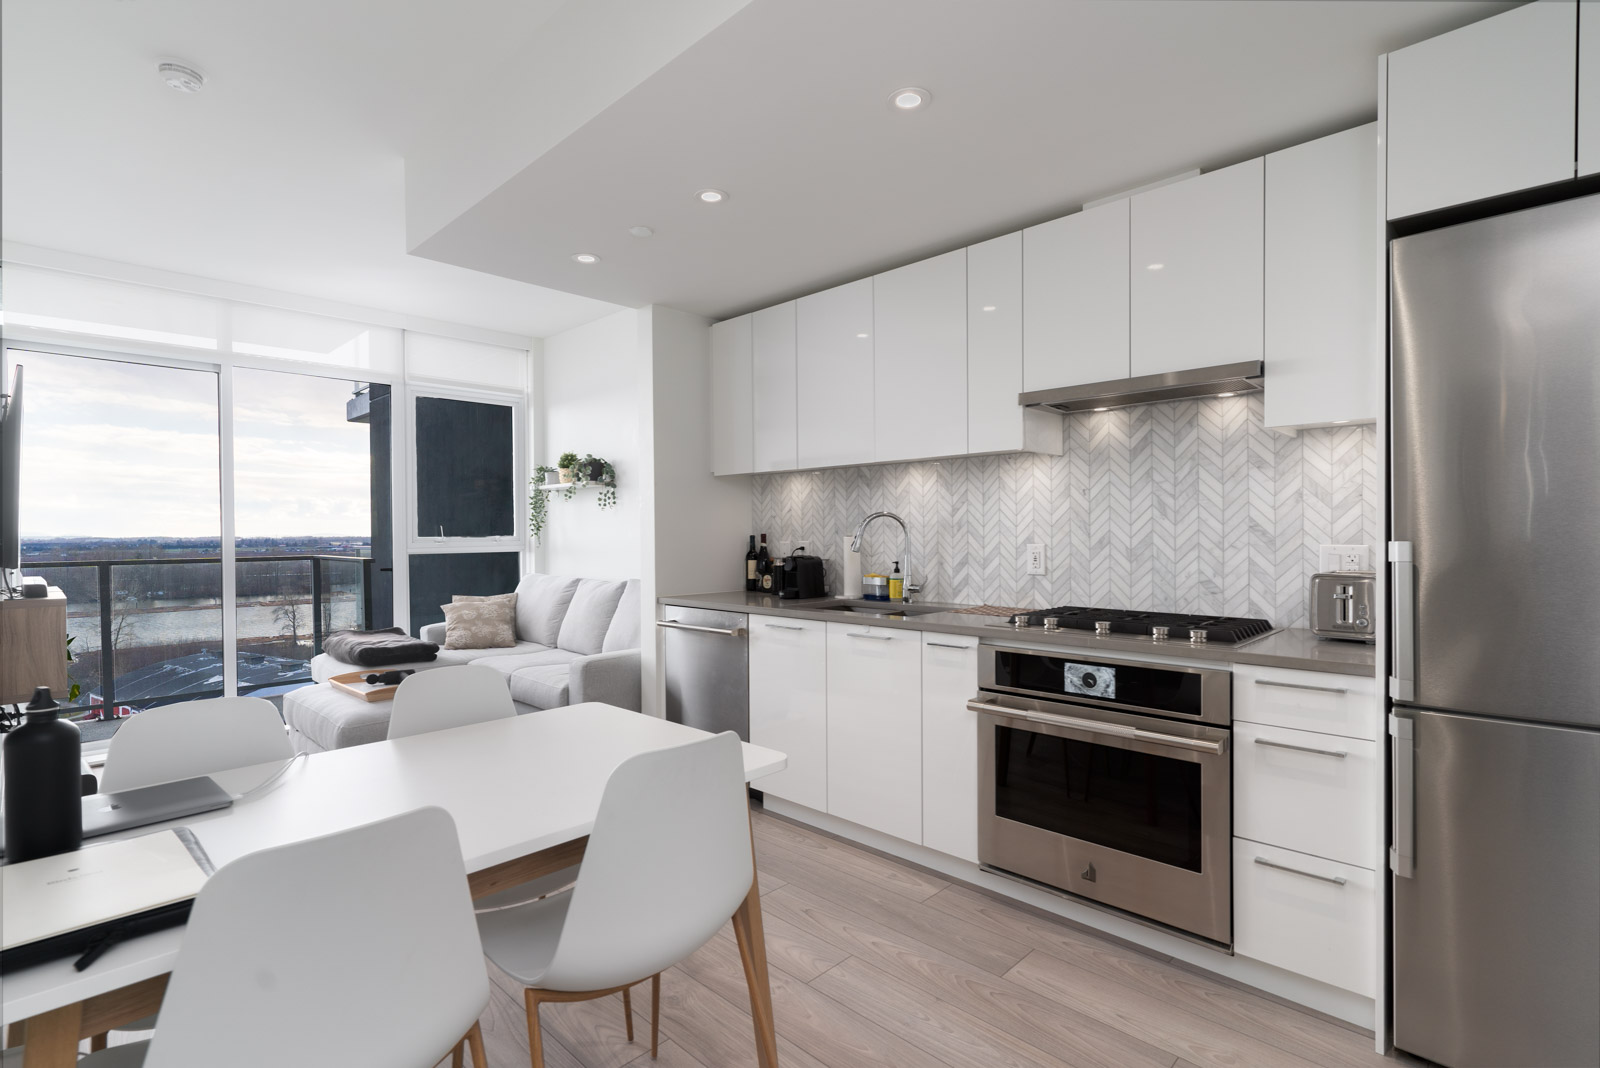 kitchen and living room view with laminate flooring in rental condo in the River District vancouver neighbourhood